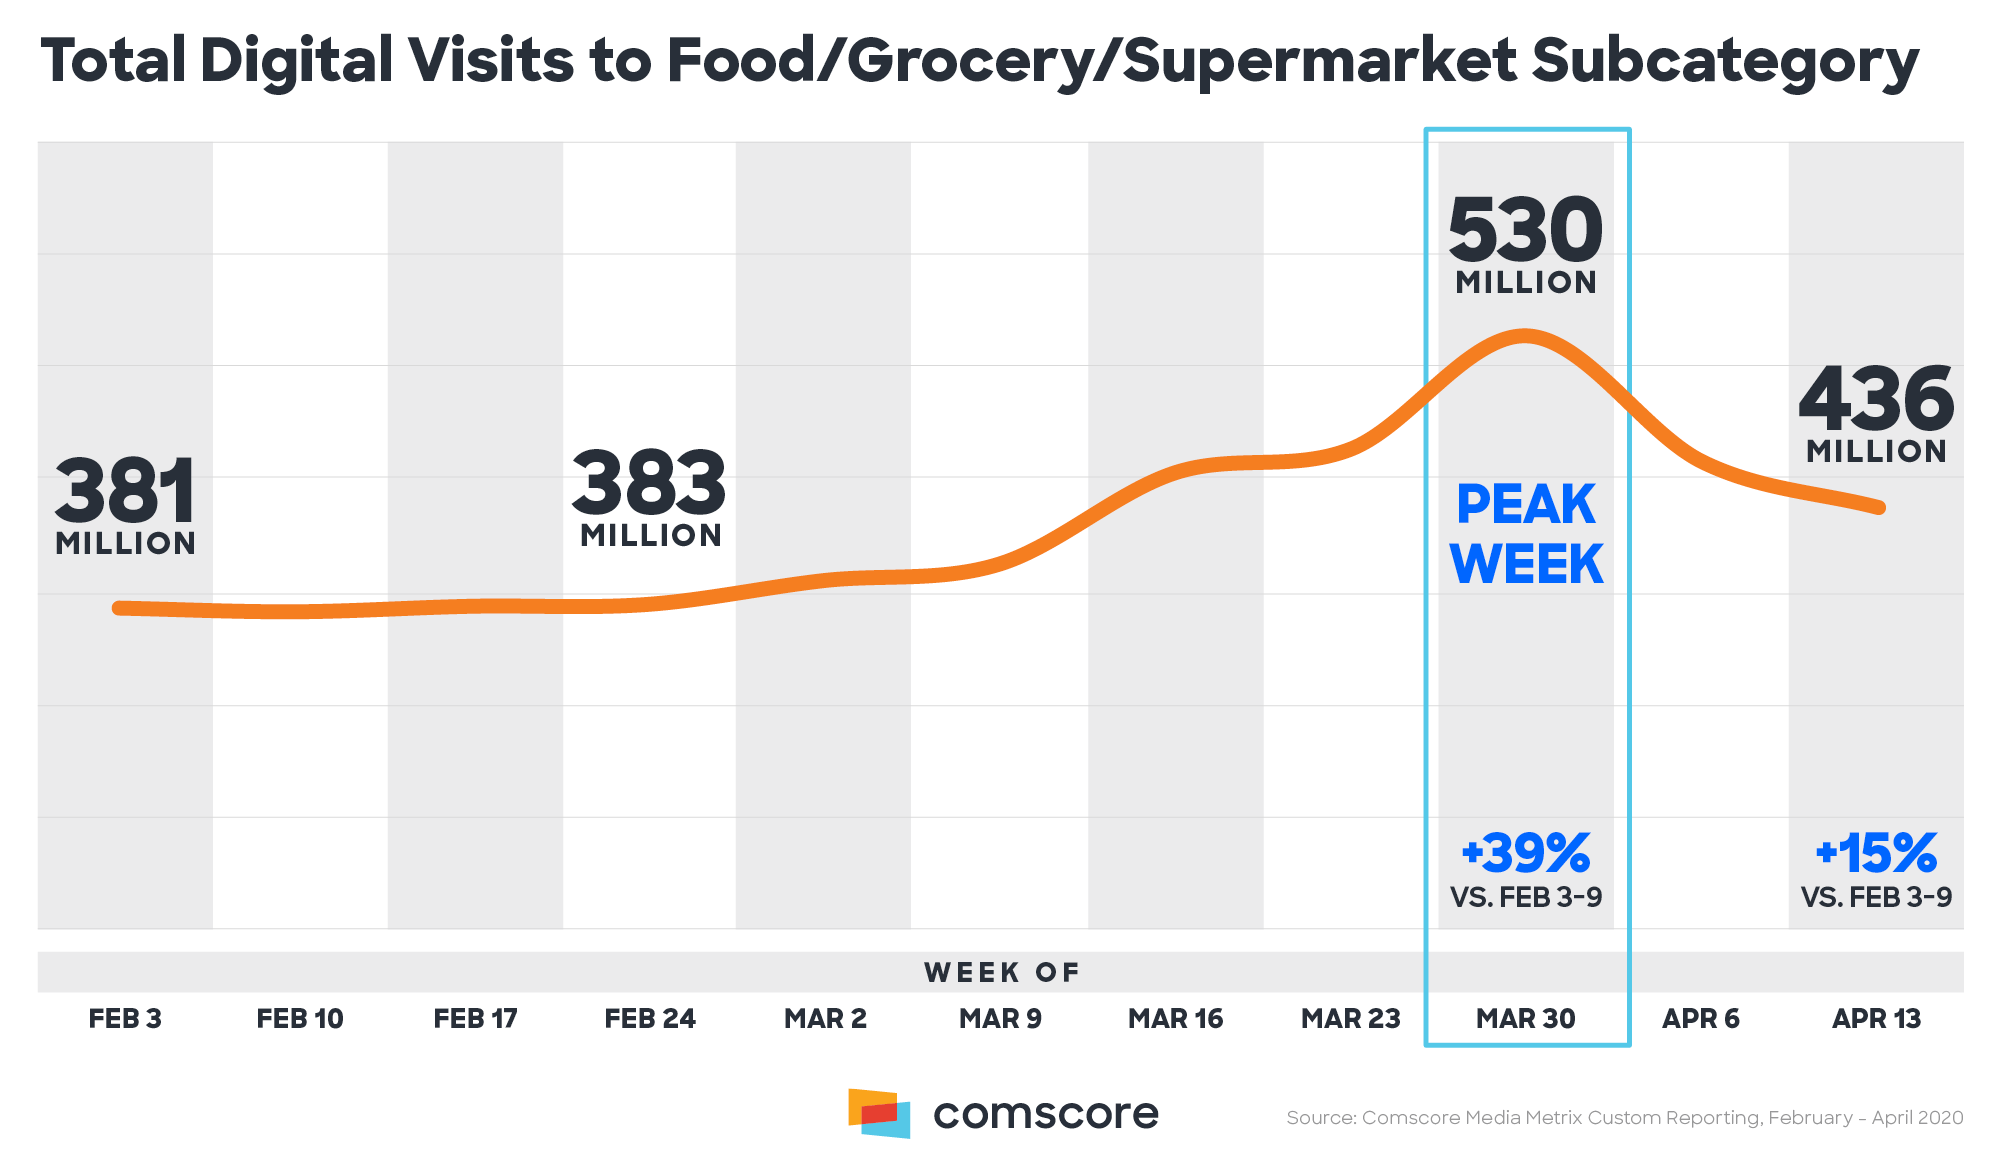 Total-Digital_Visits-to-Food-Grocery-Supermarket-Subcategory